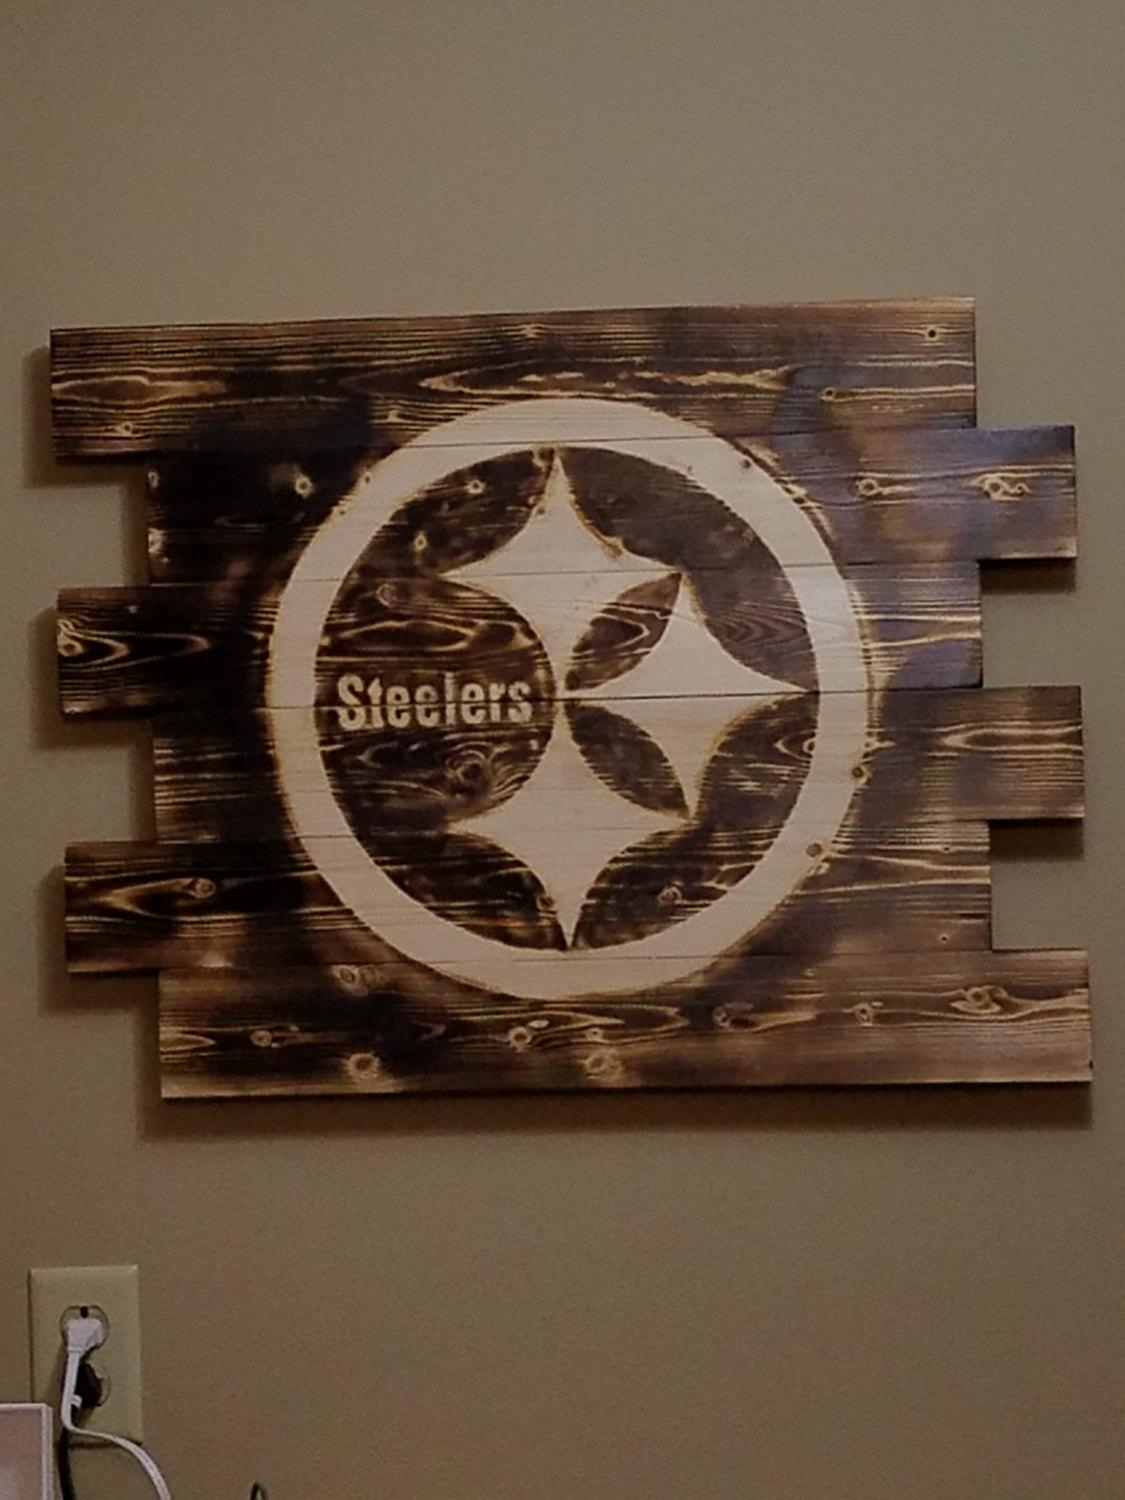 Pittsburgh Steelers Wall Art Rustic Wall Art Wood Burned Within Steelers Wall Art (View 9 of 20)